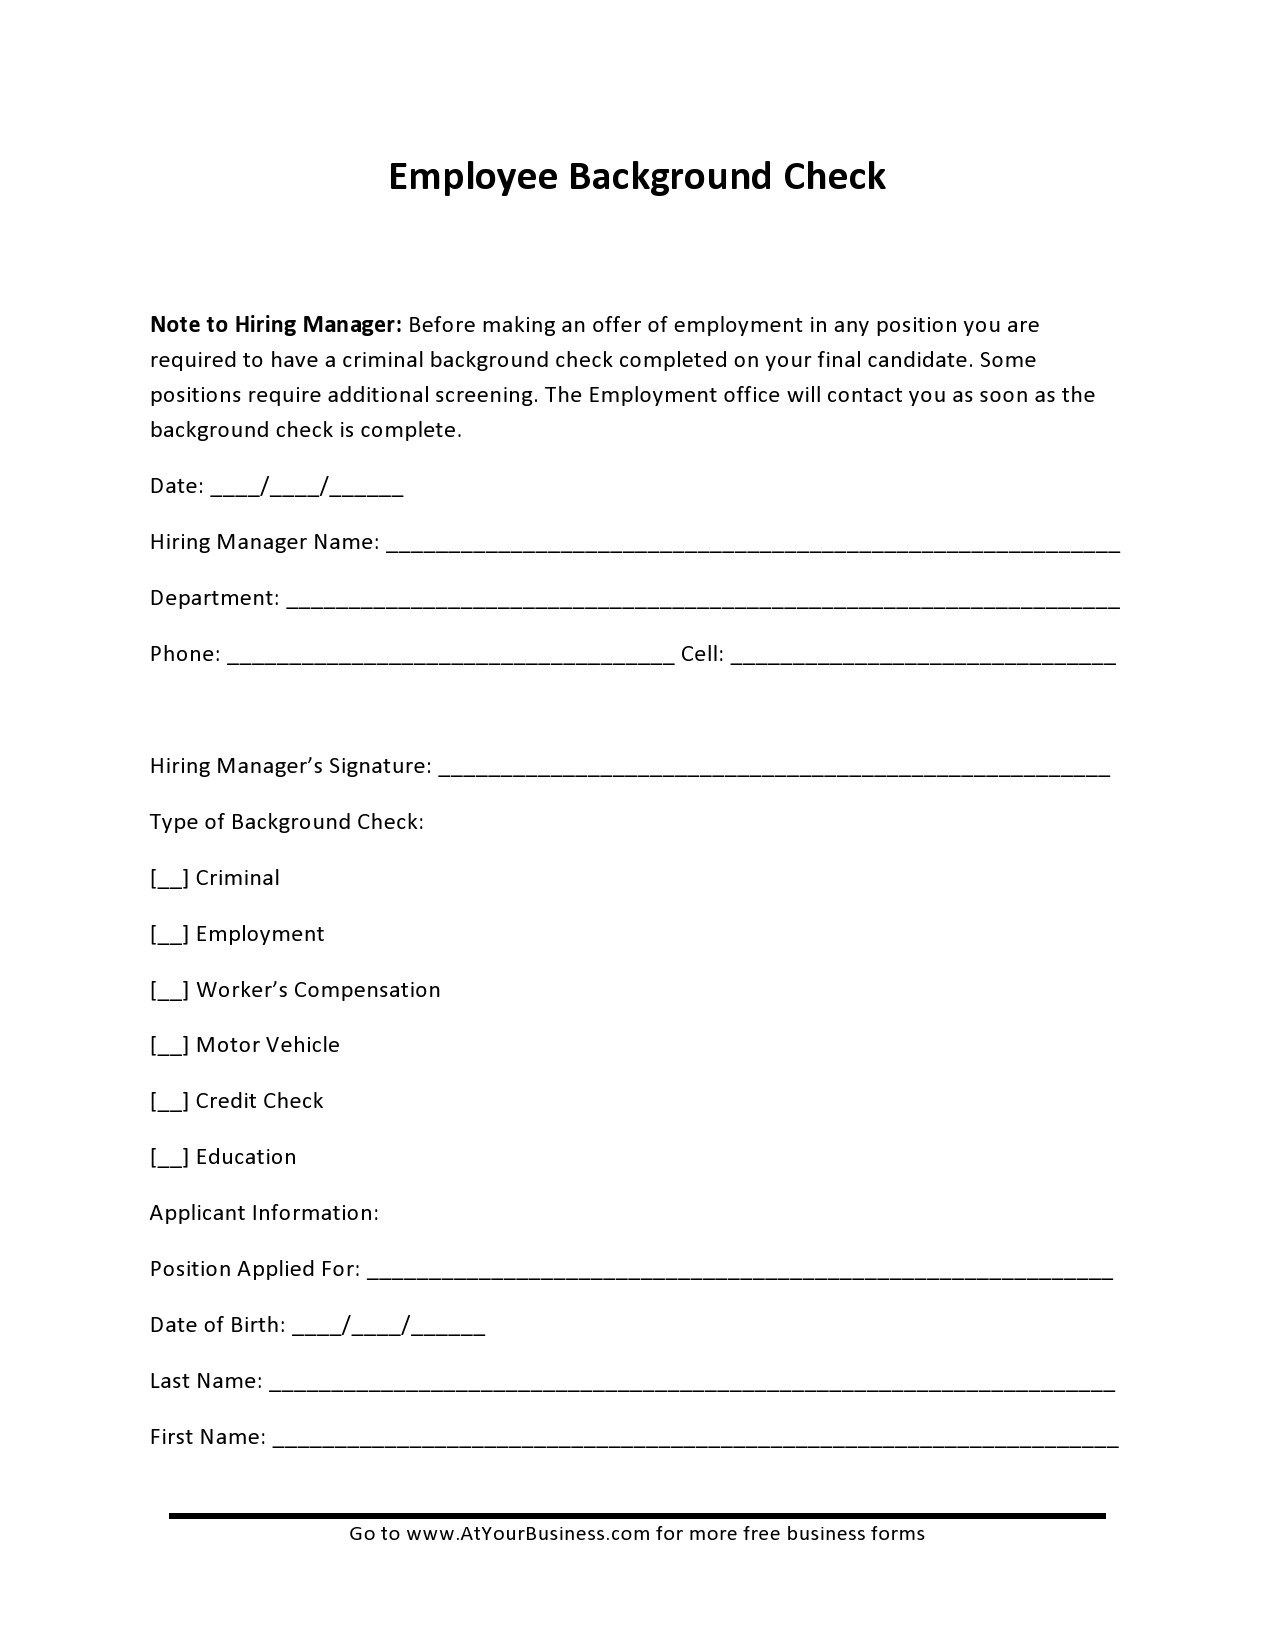 Free background check form 35